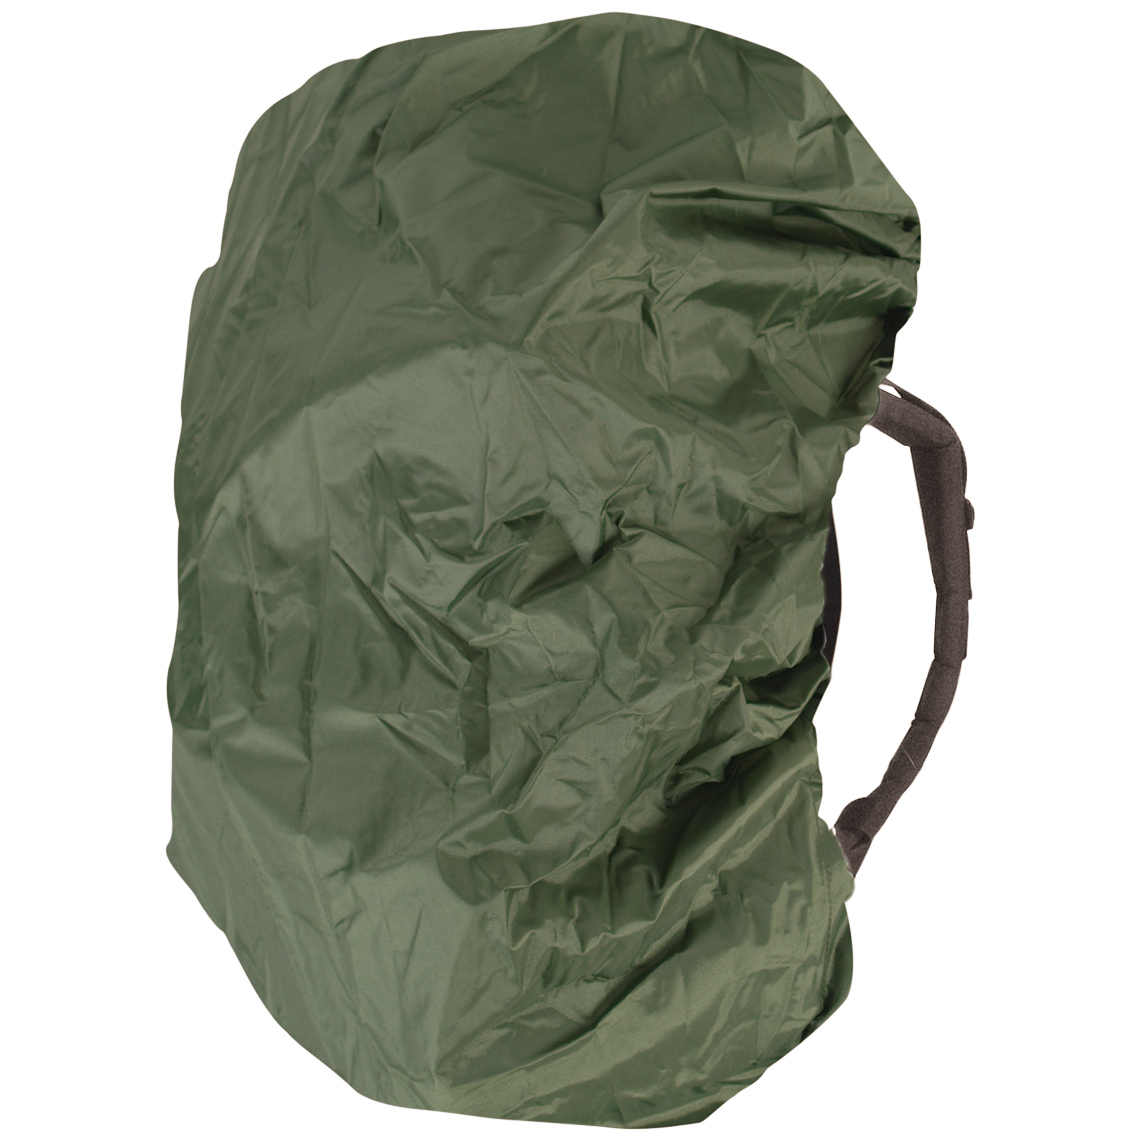 f1a628cef68 Details about Tactical Hiking Camping Backpack Rucksack Rain Cover  Waterproof Protection Olive